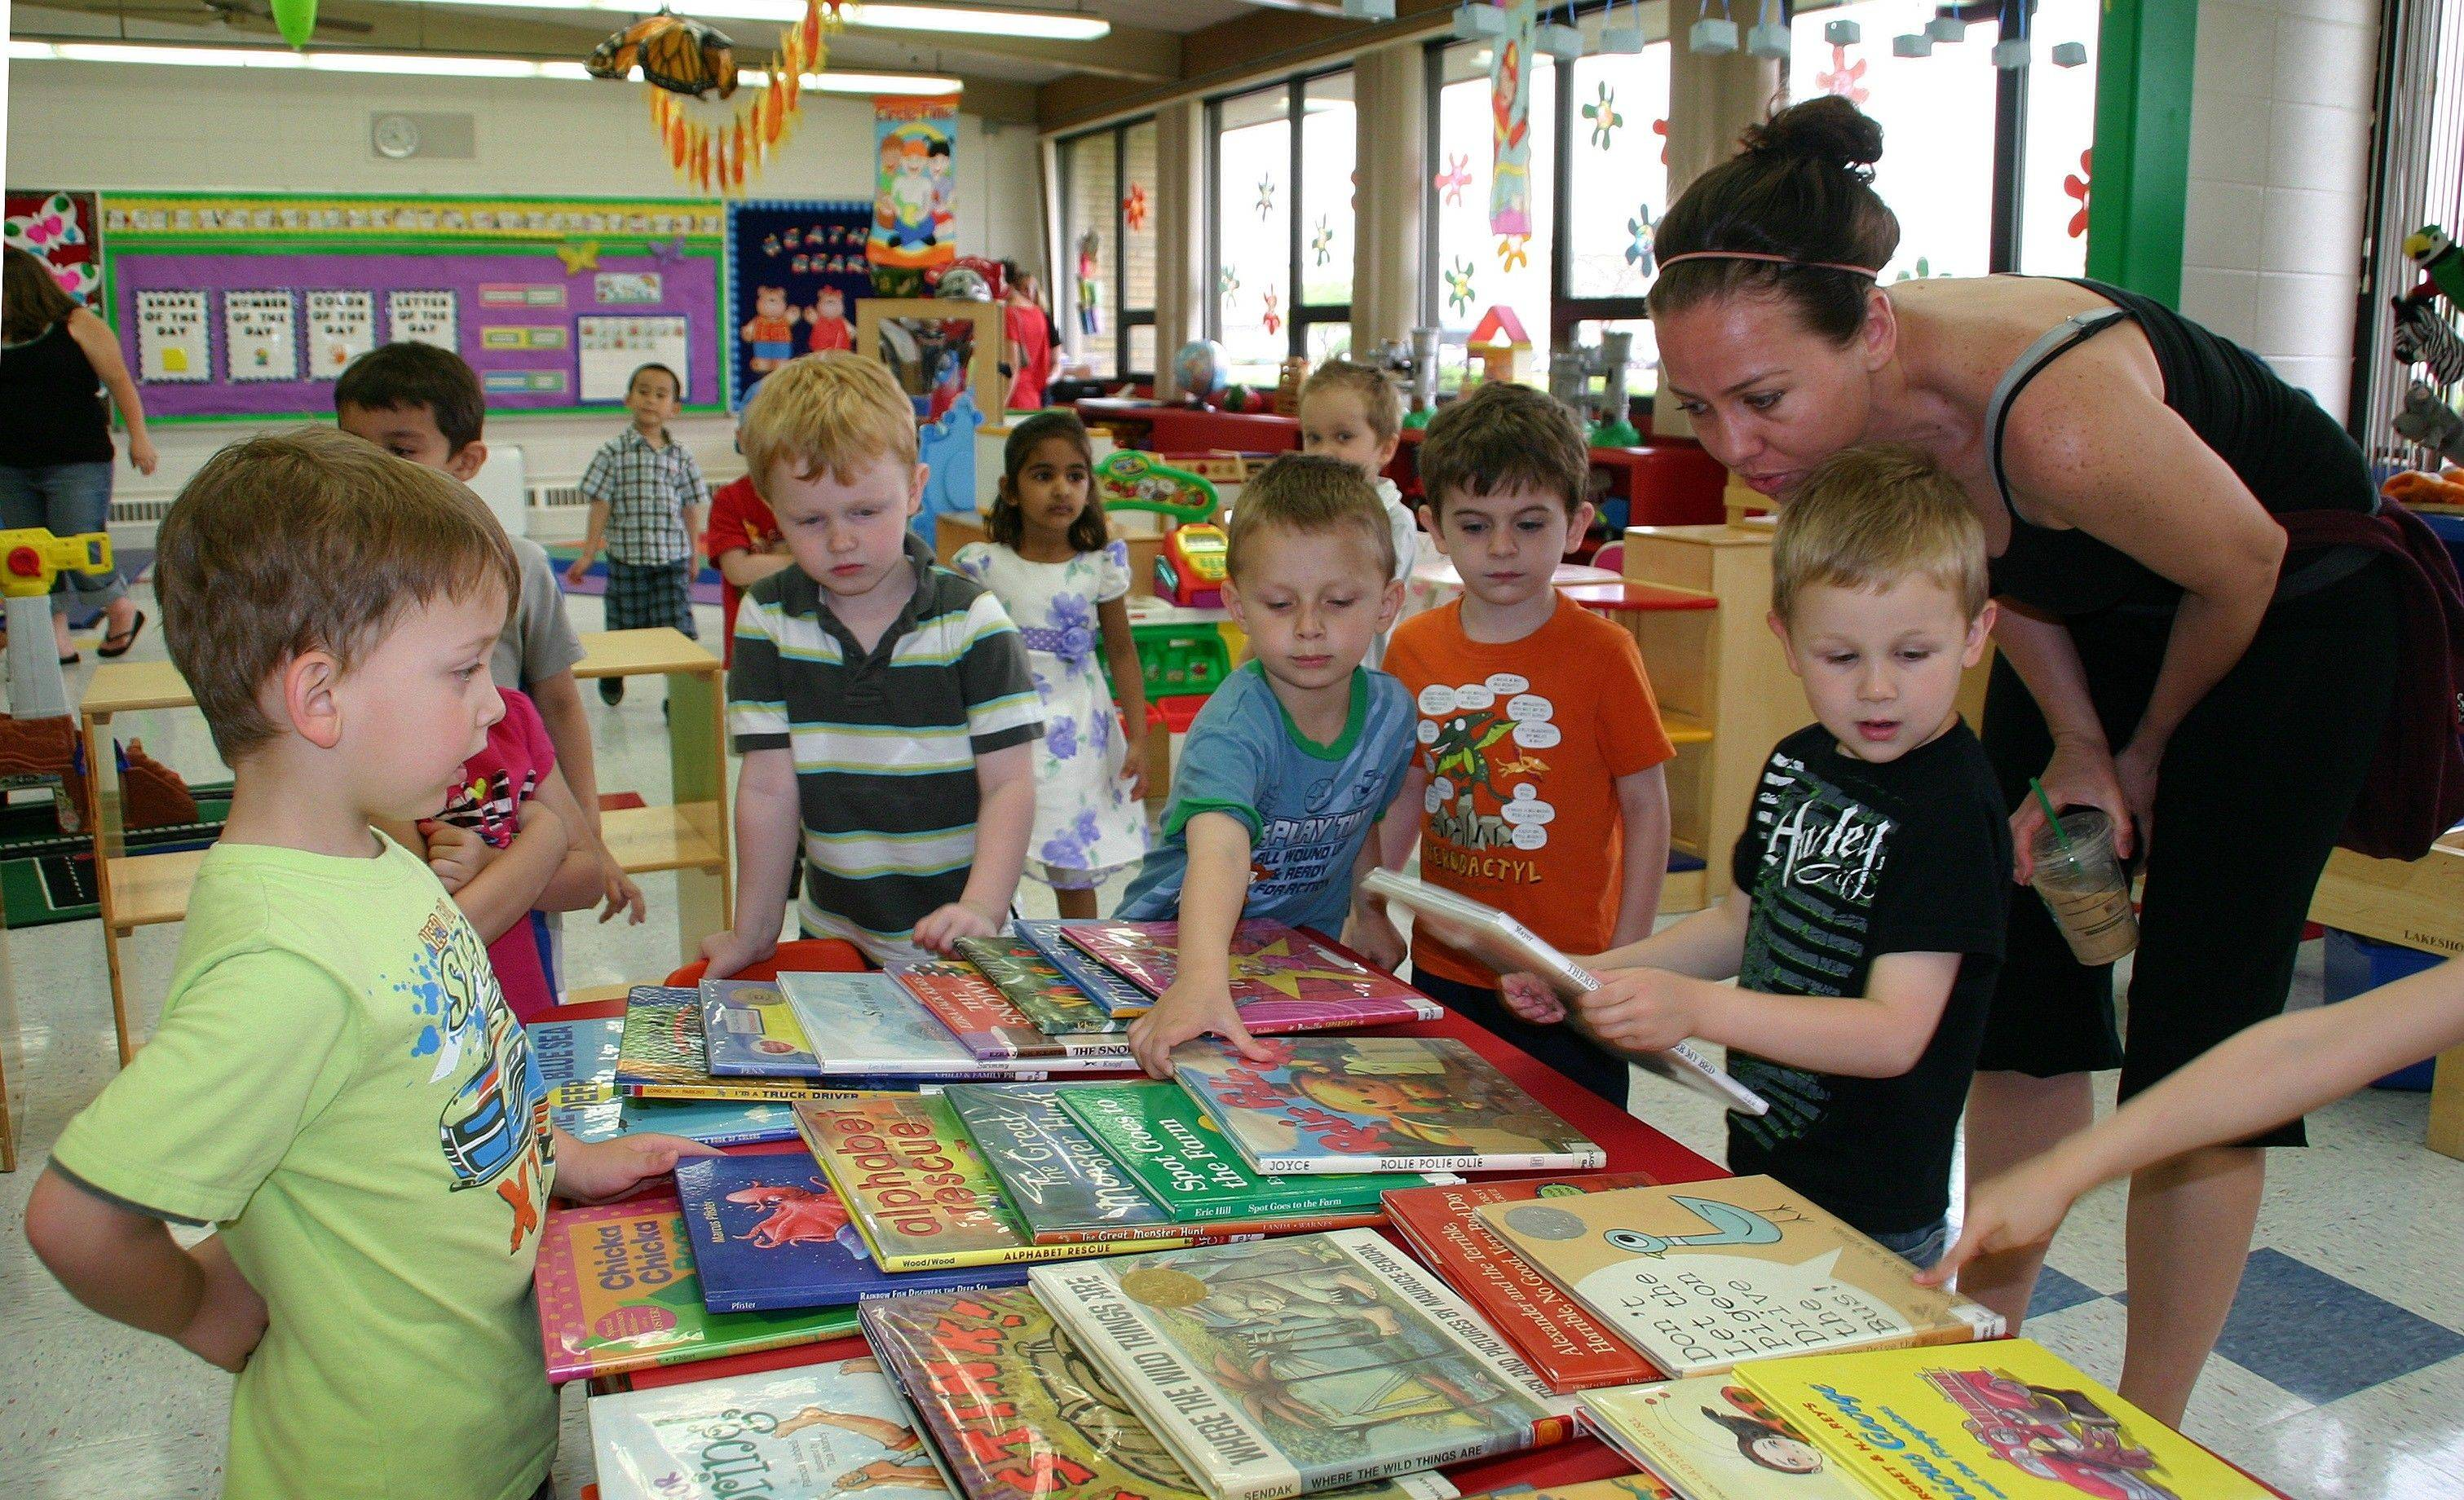 Children and their guests chose from over 100 books at the fifth annual Brunch with Books on May 11 and 12 in the Terrific 3's Creative Corners preschool class.